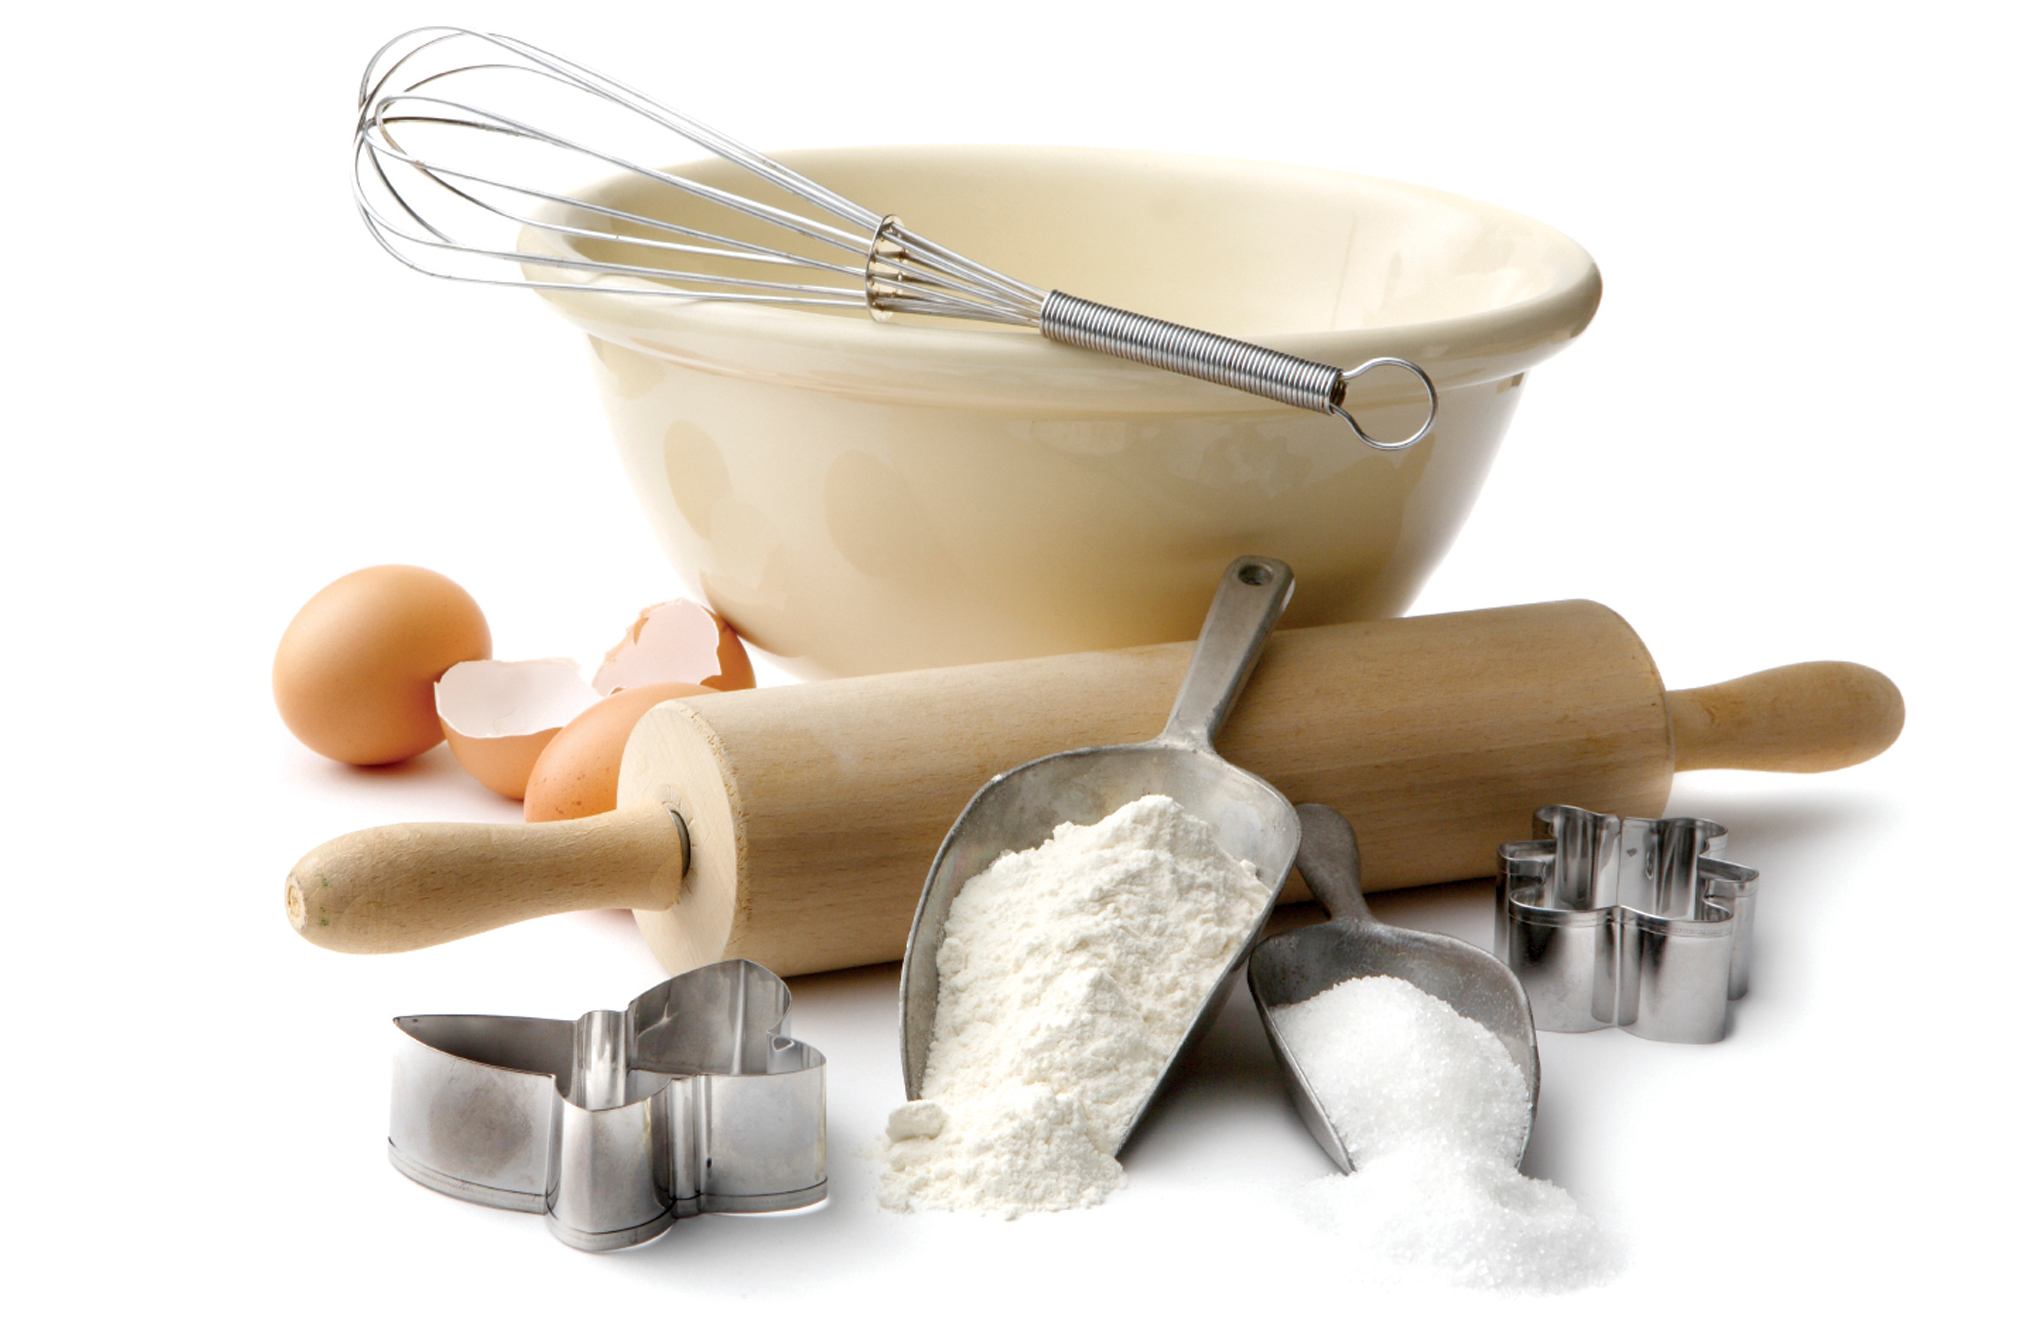 baking utensils Fill your kitchen cabinets with our baking supplies: sheets, bread pans & more nothing beats the smell of freshly baked breads, pies and cookies.